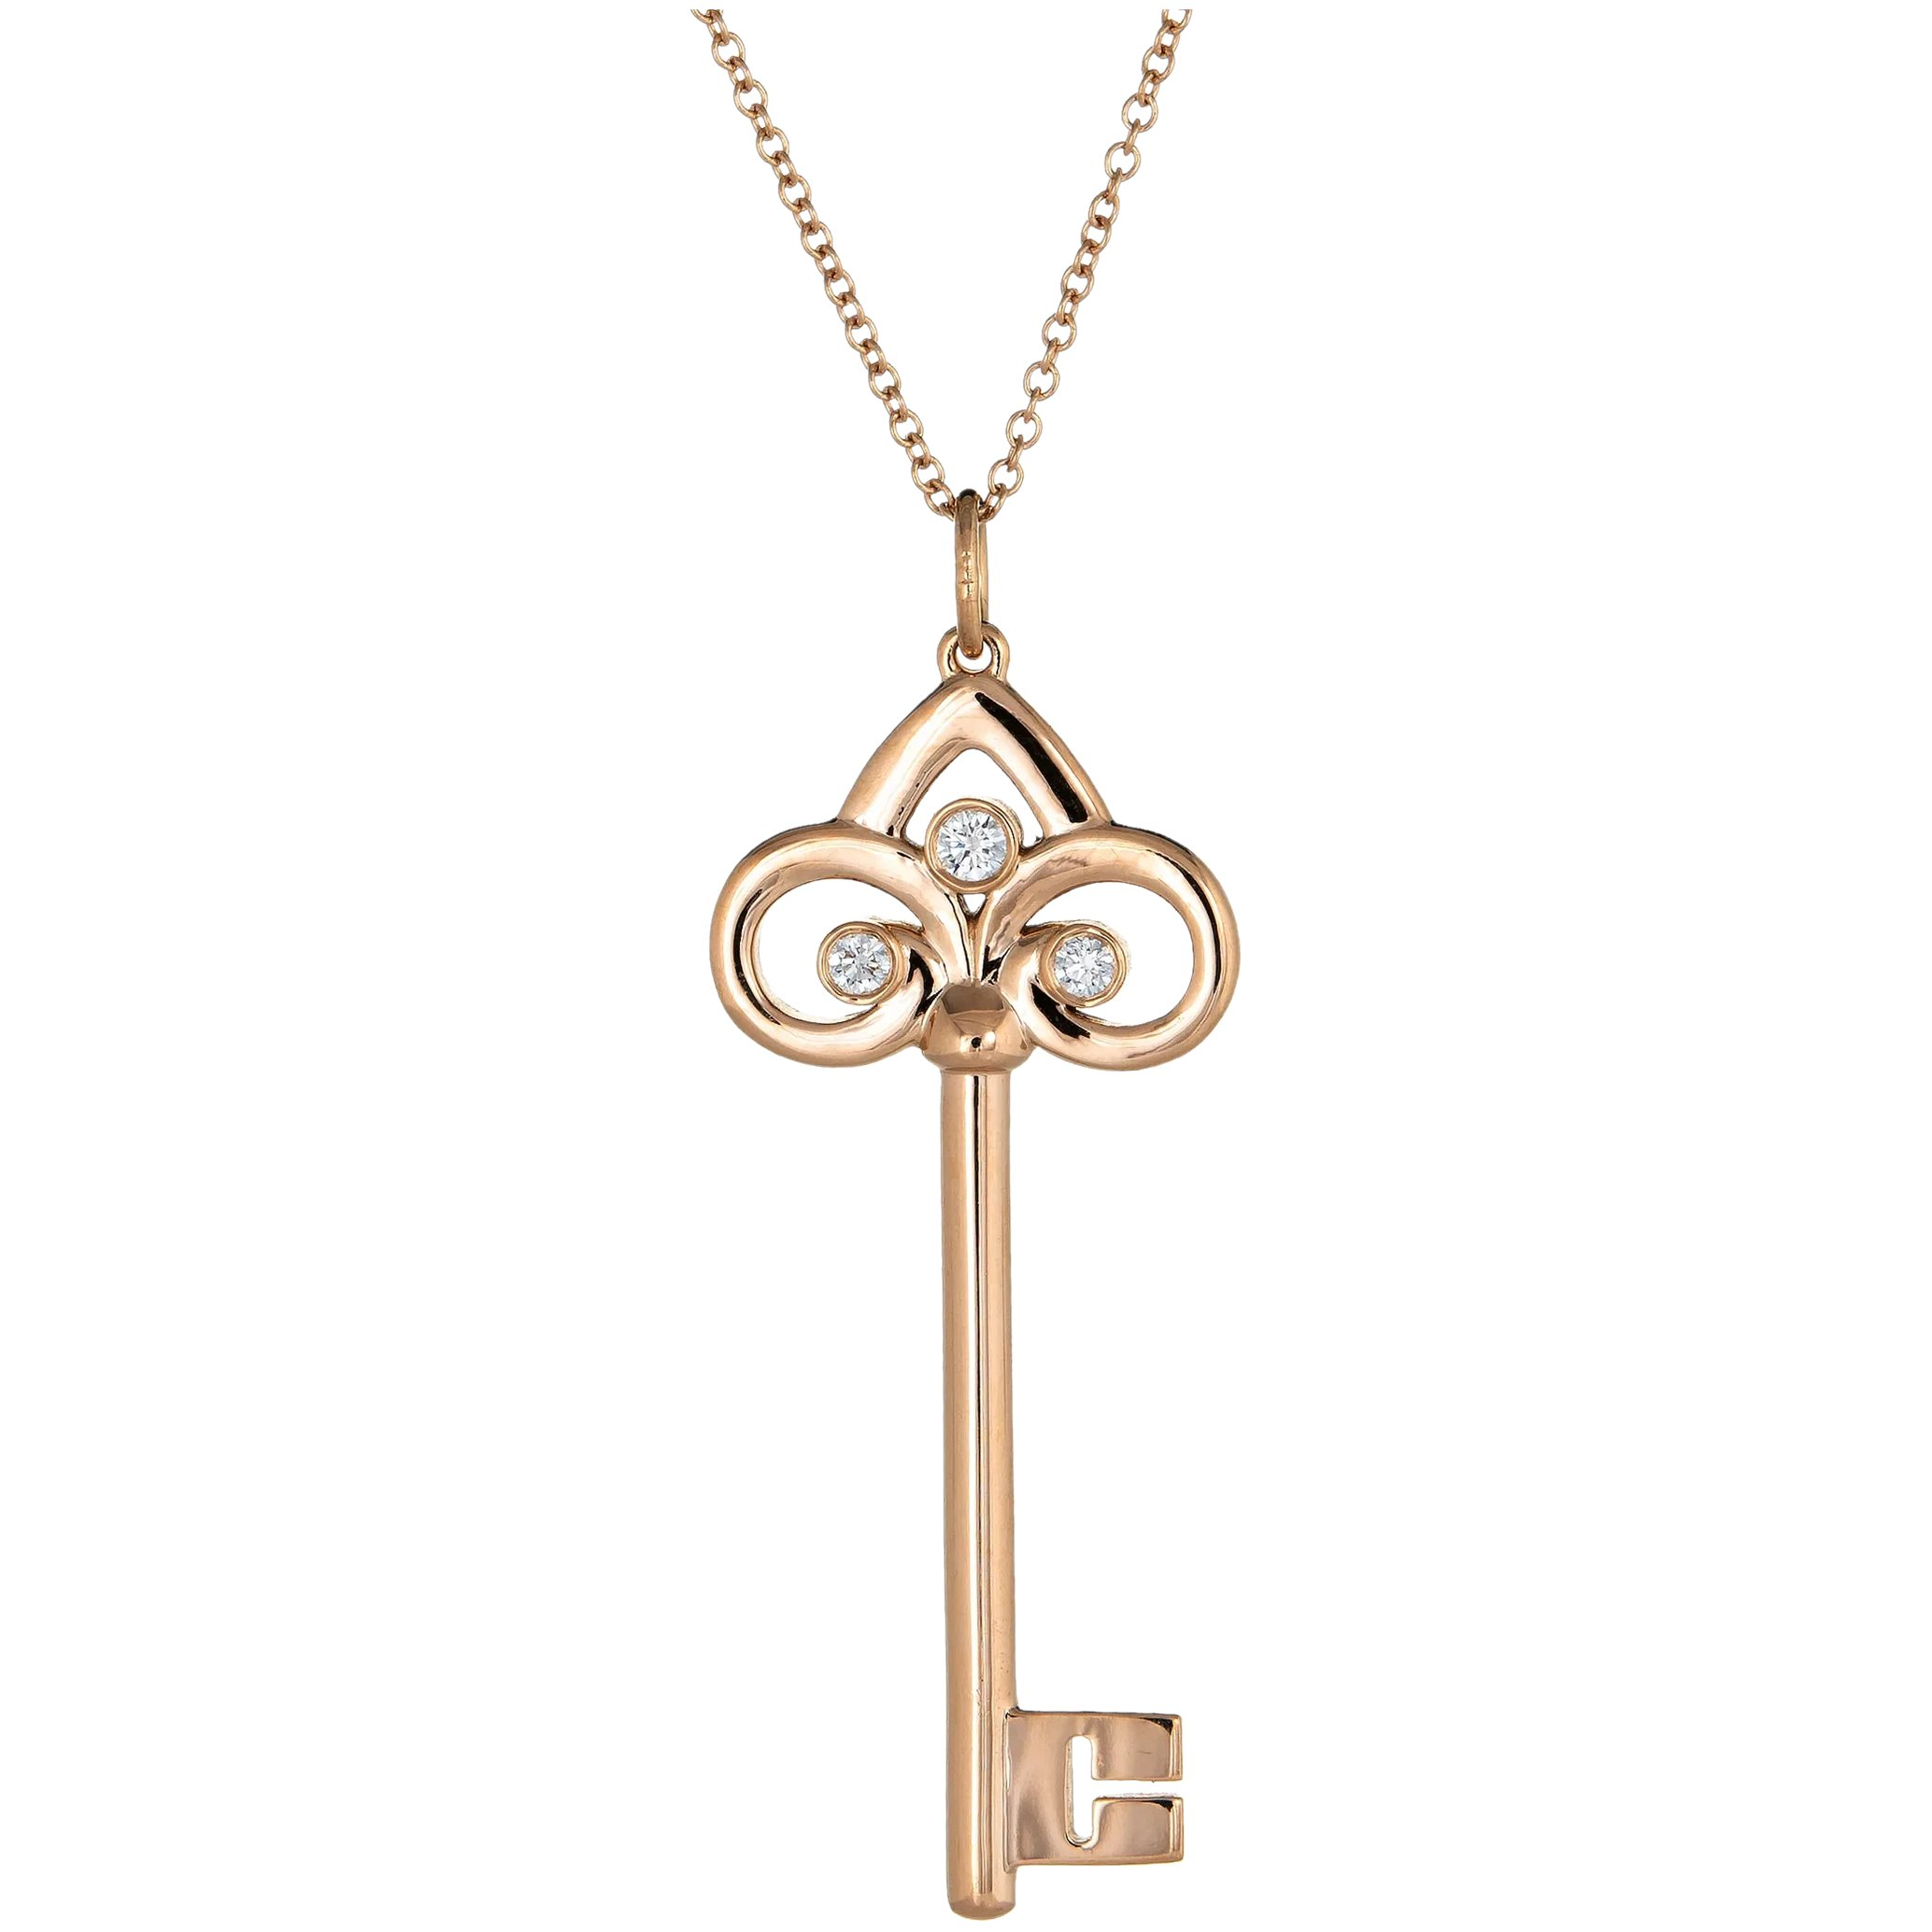 Tiffany Co Fleur De Lis Diamond Key Pendant Necklace 18 Karat Rose Sophie Jane Ruby Lane